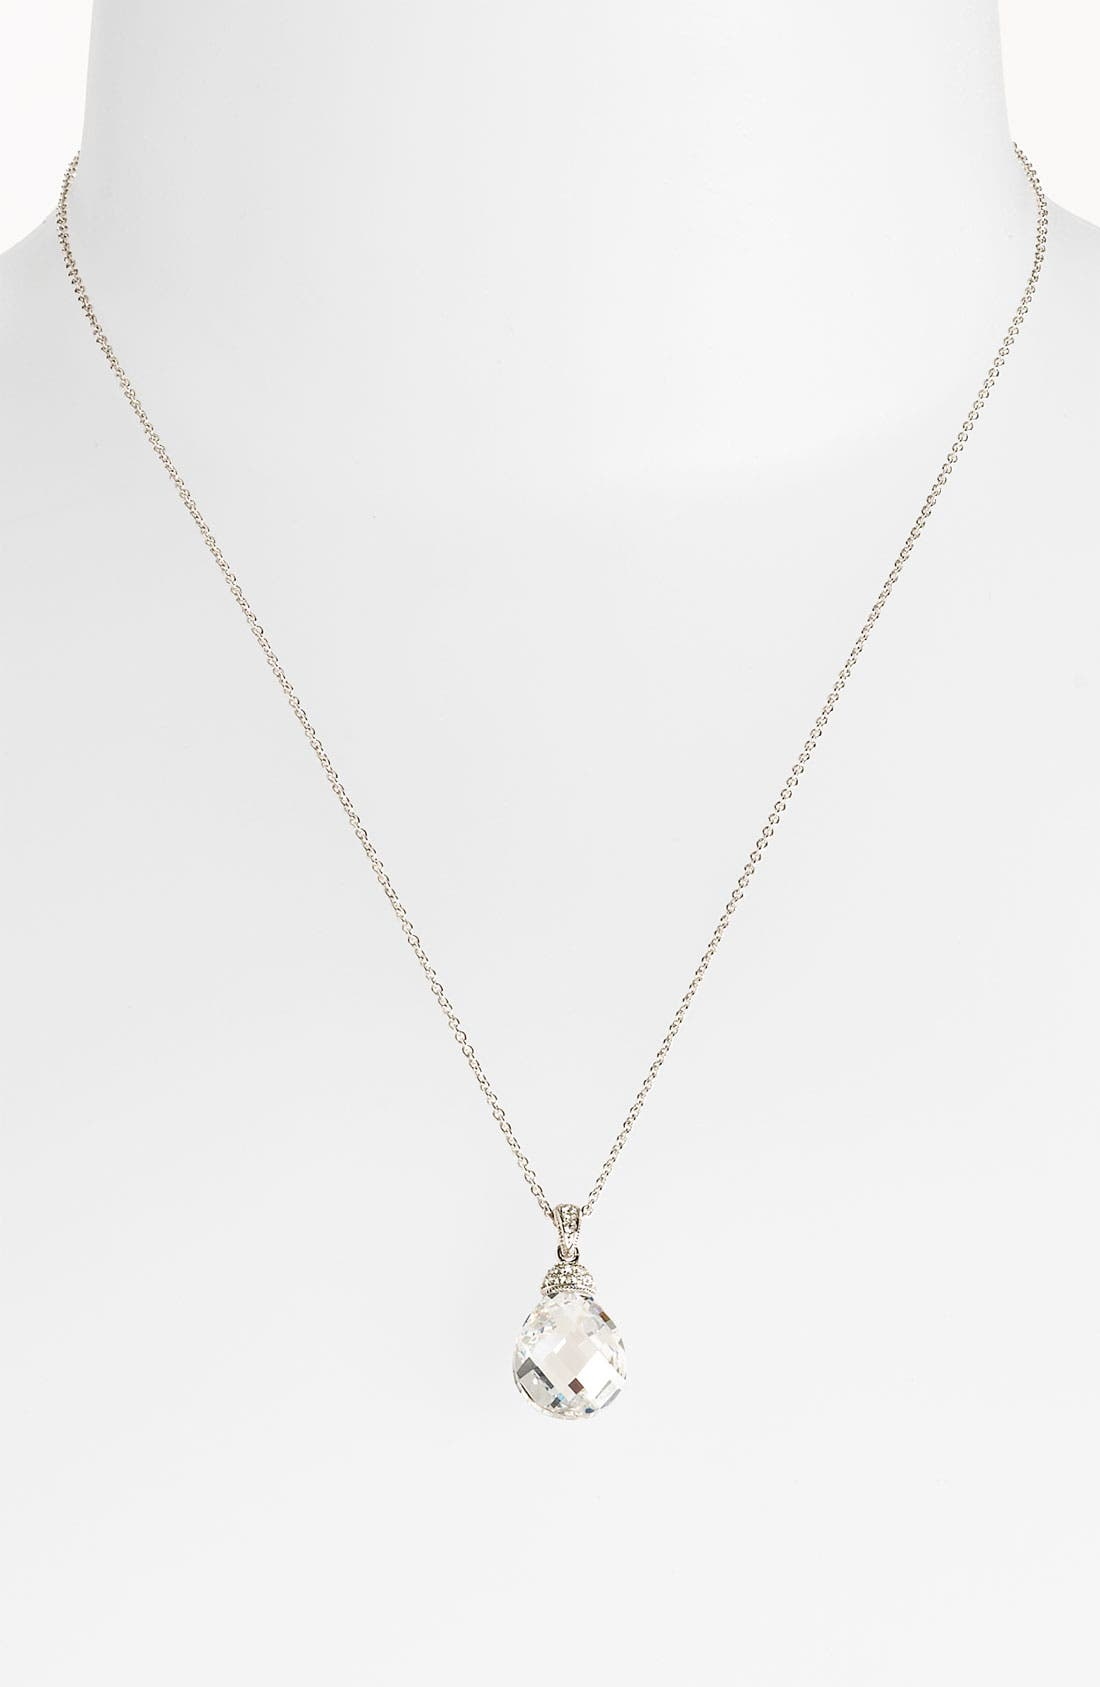 Main Image - Nadri Boxed Faceted Pendant Necklace (Nordstrom Exclusive)